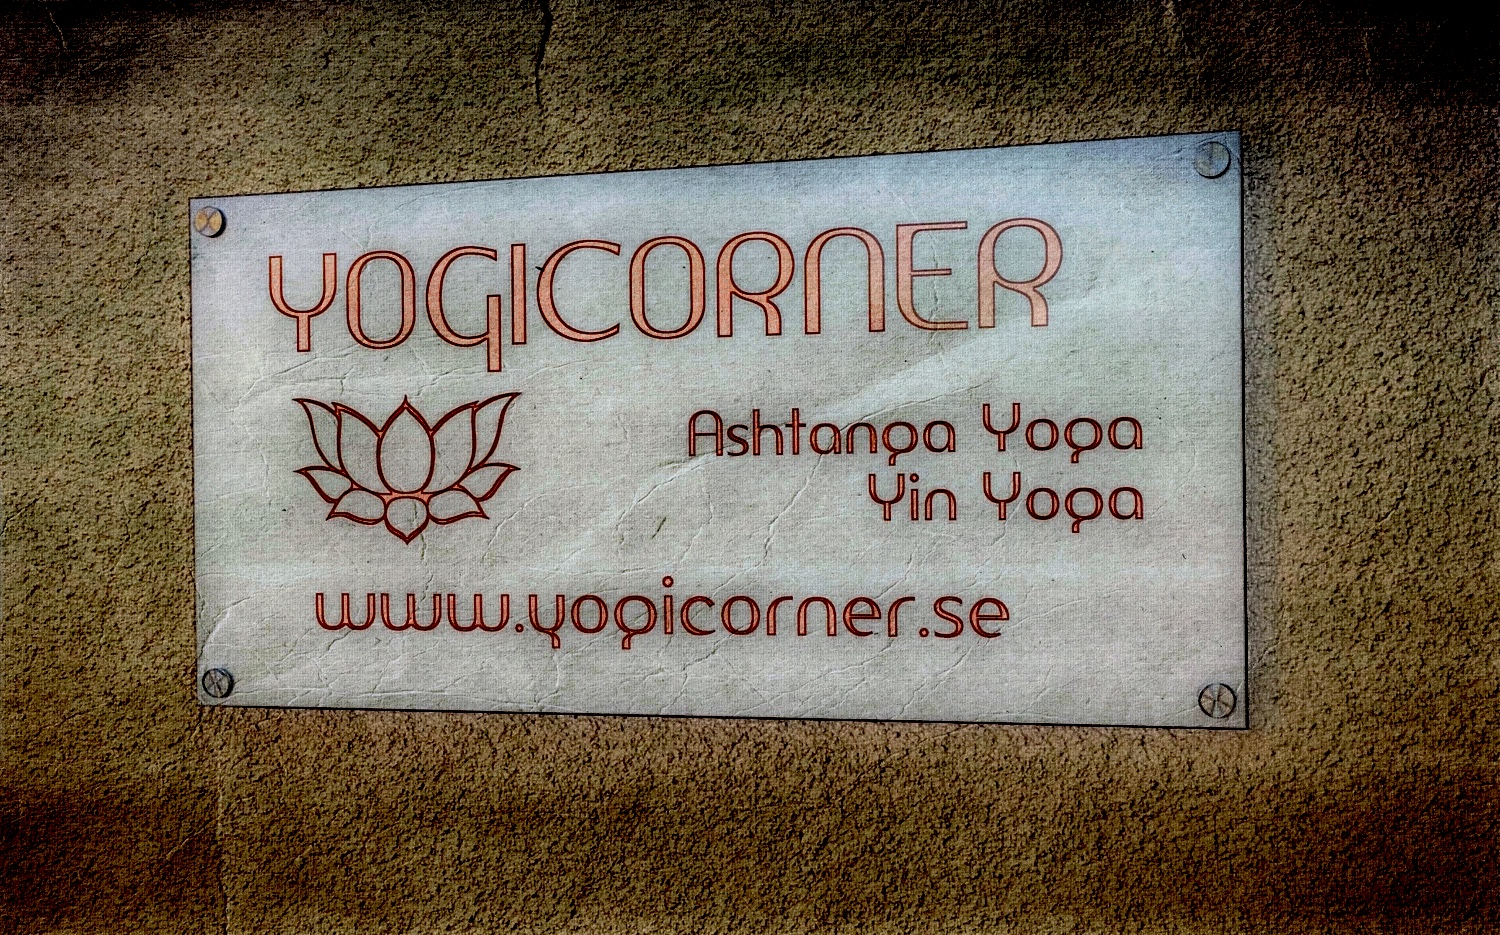 Yogicorner sign